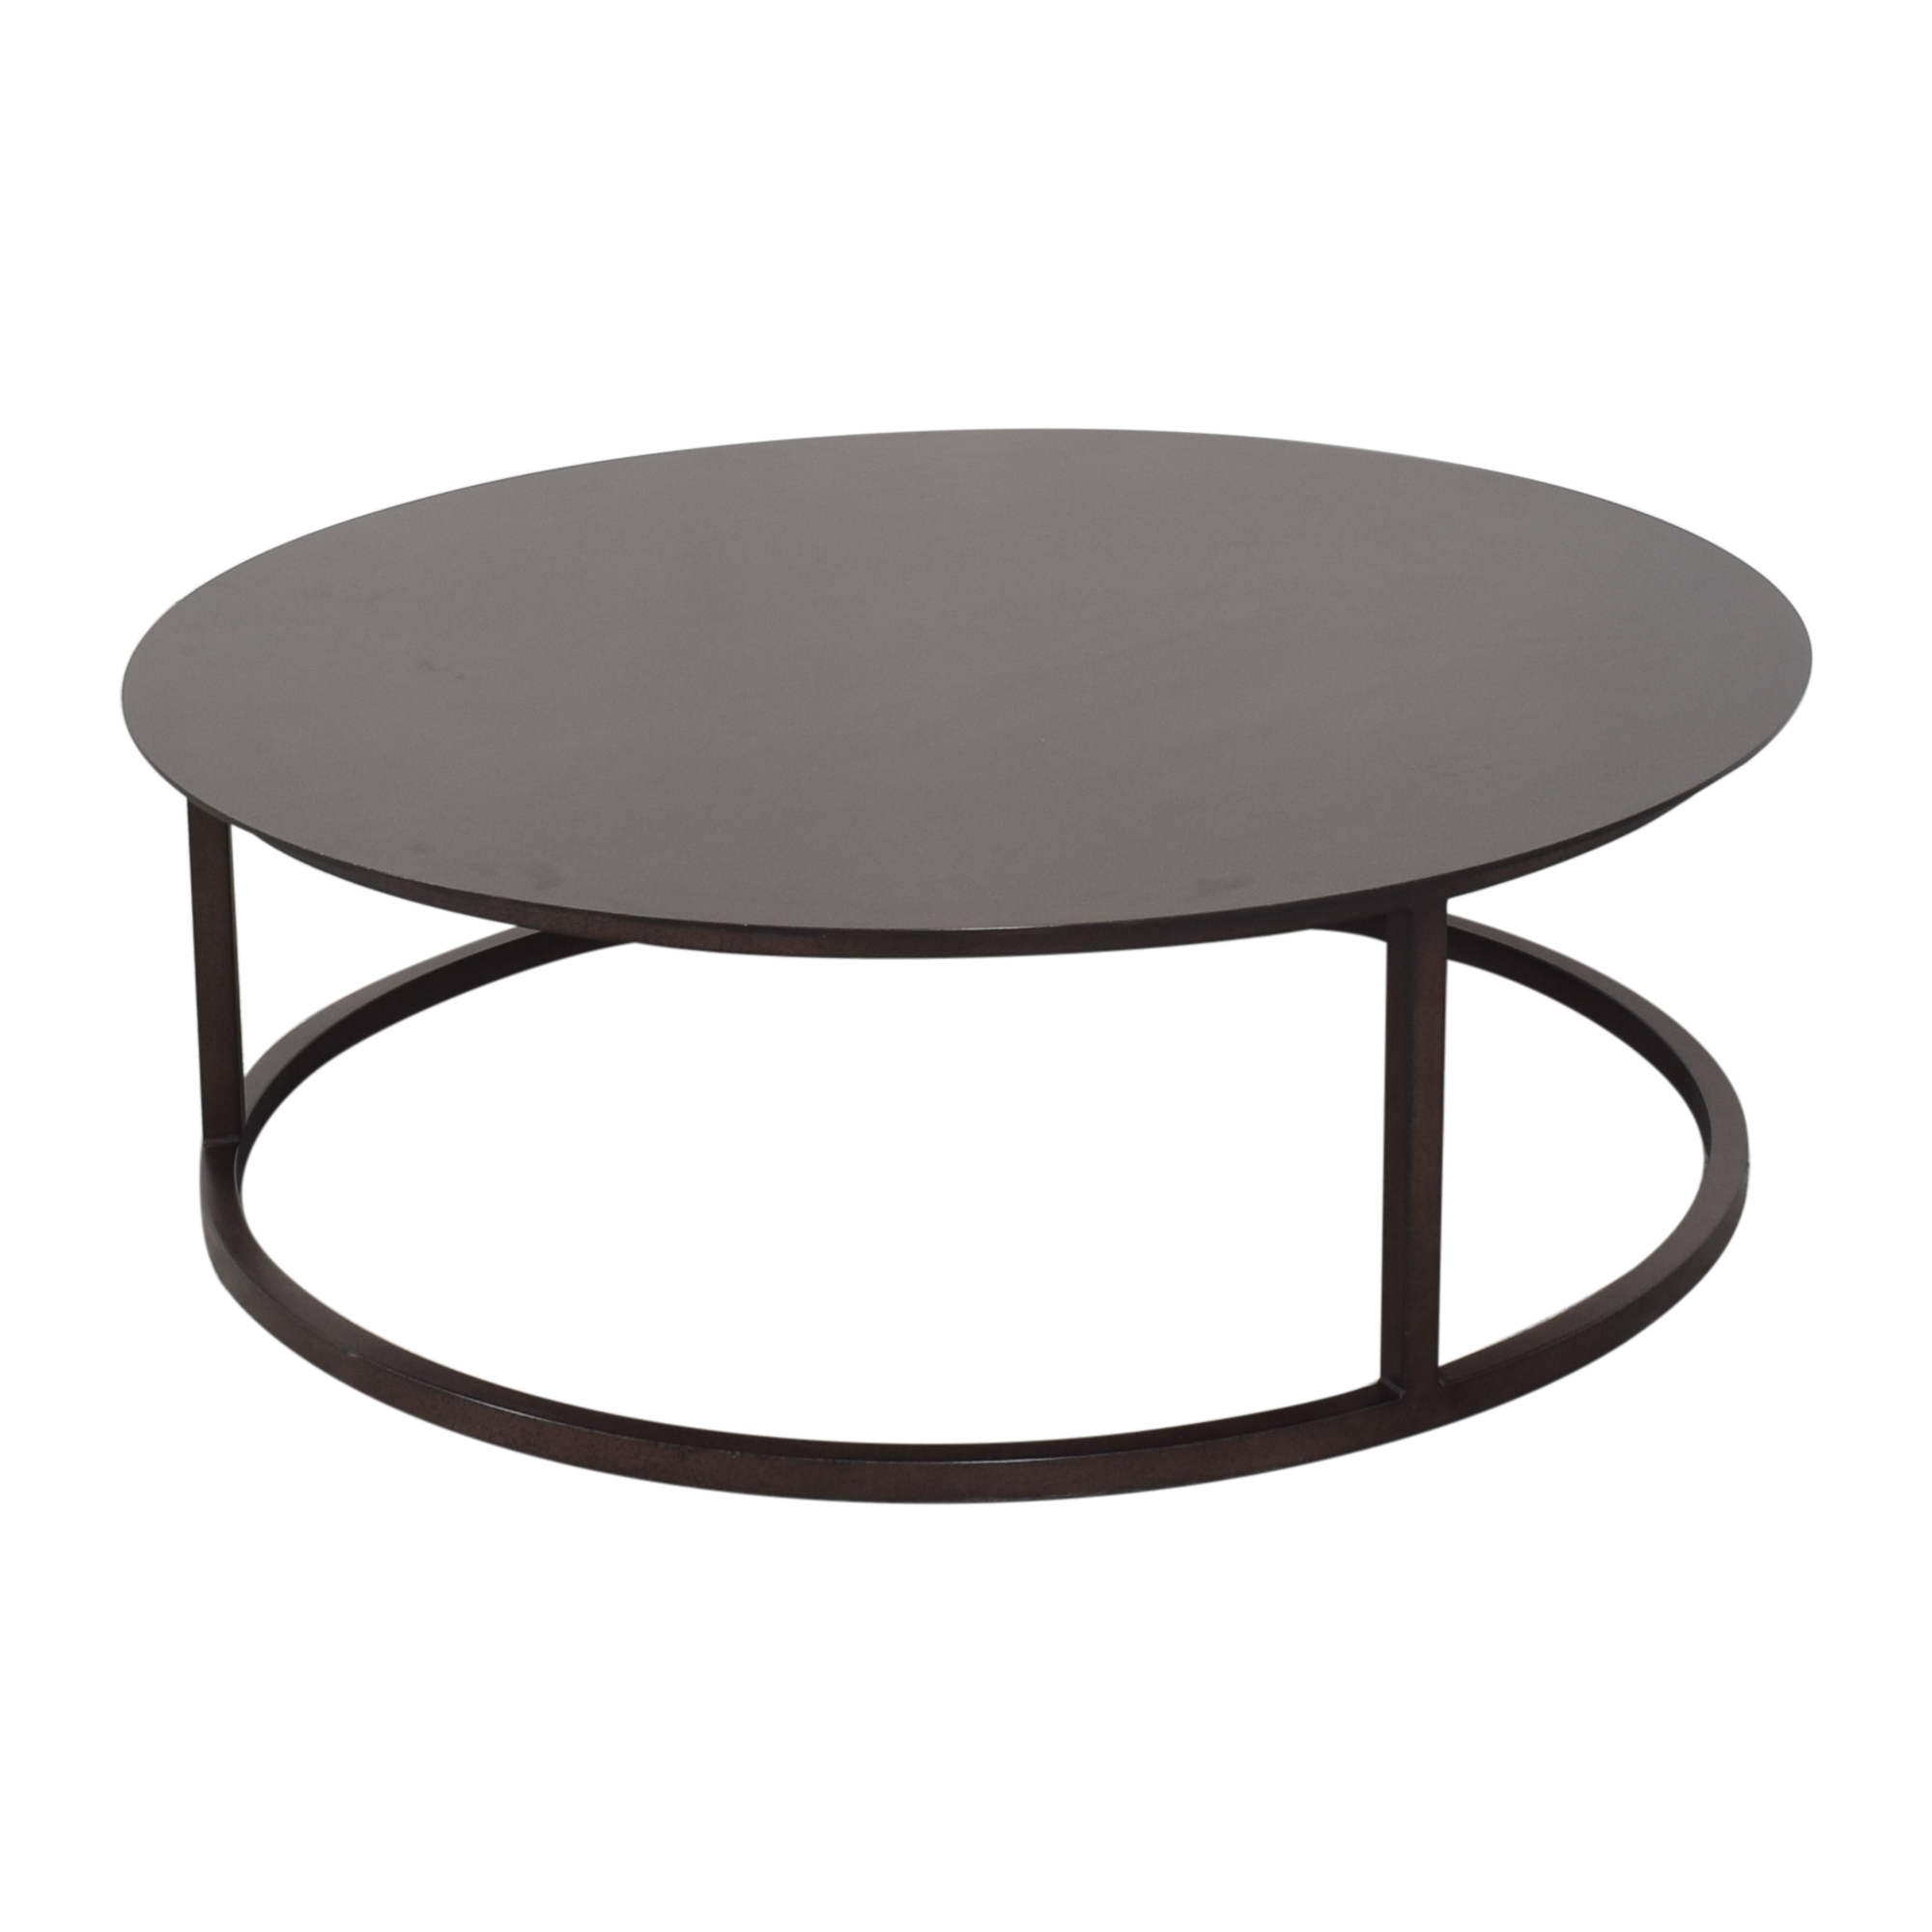 Restoration Hardware Restoration Hardware Round Mercer Coffee Table on sale